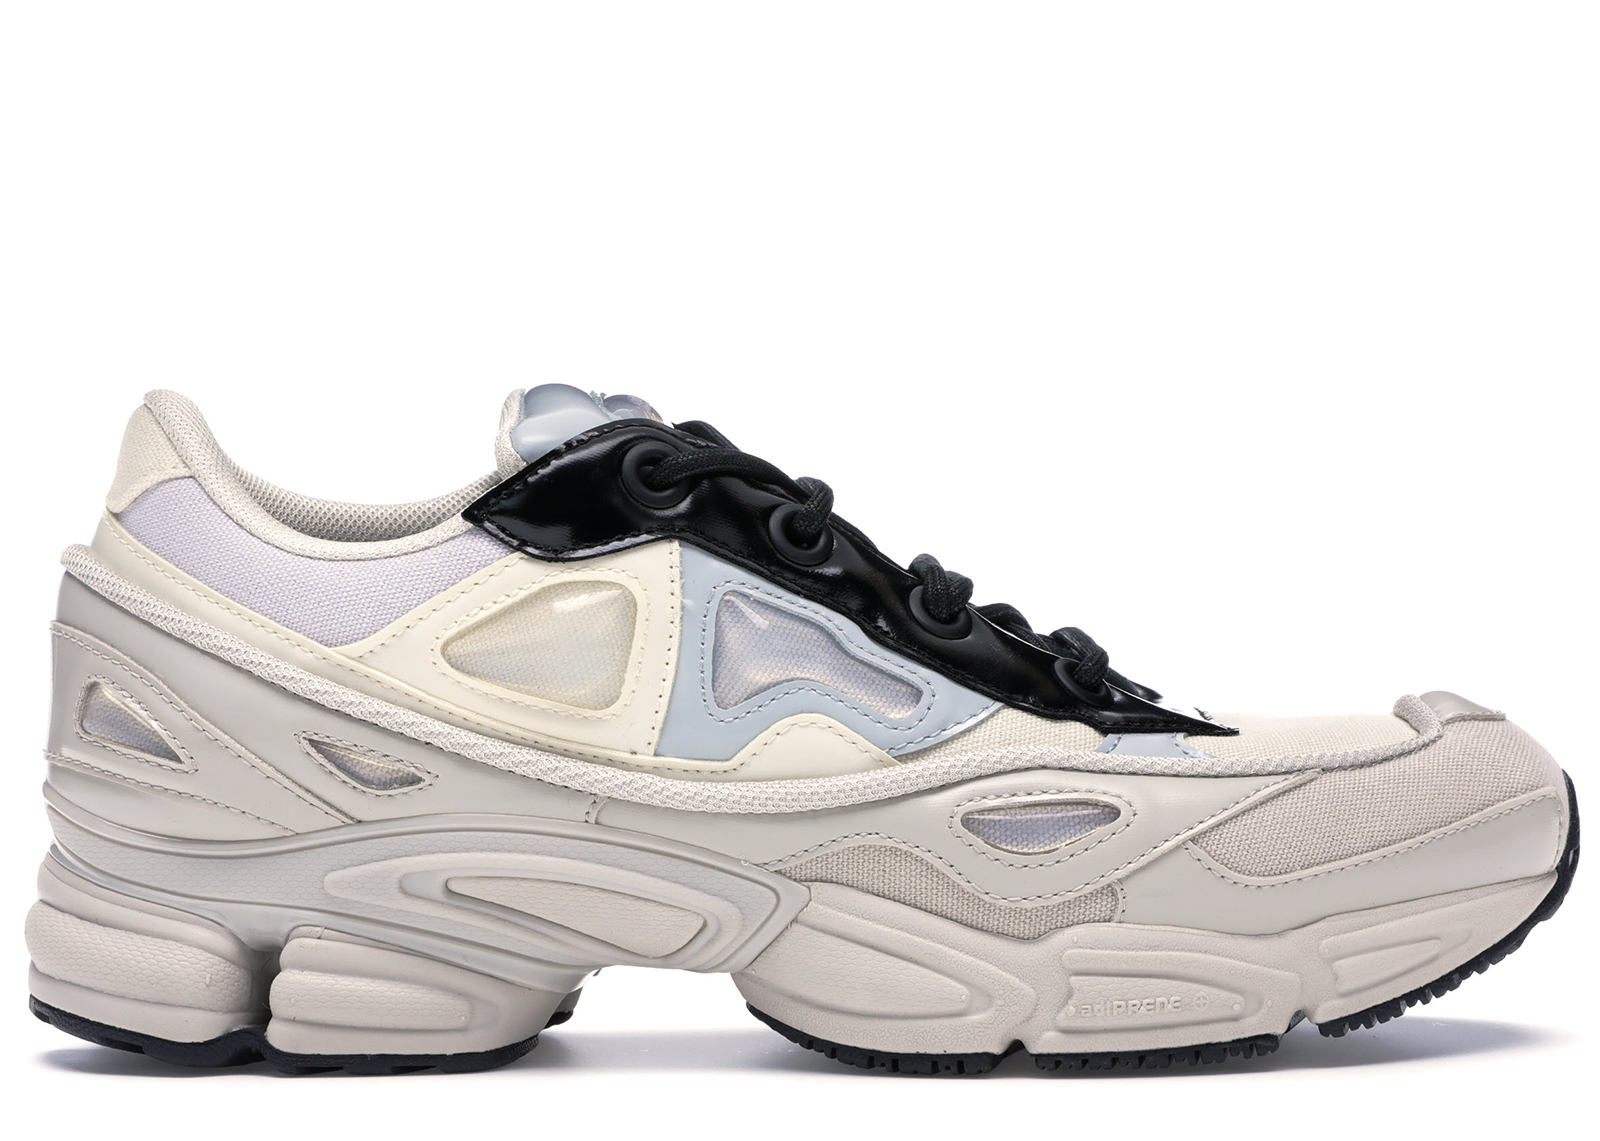 adidas Ozweego 3 Raf Simons Cream White Core Black